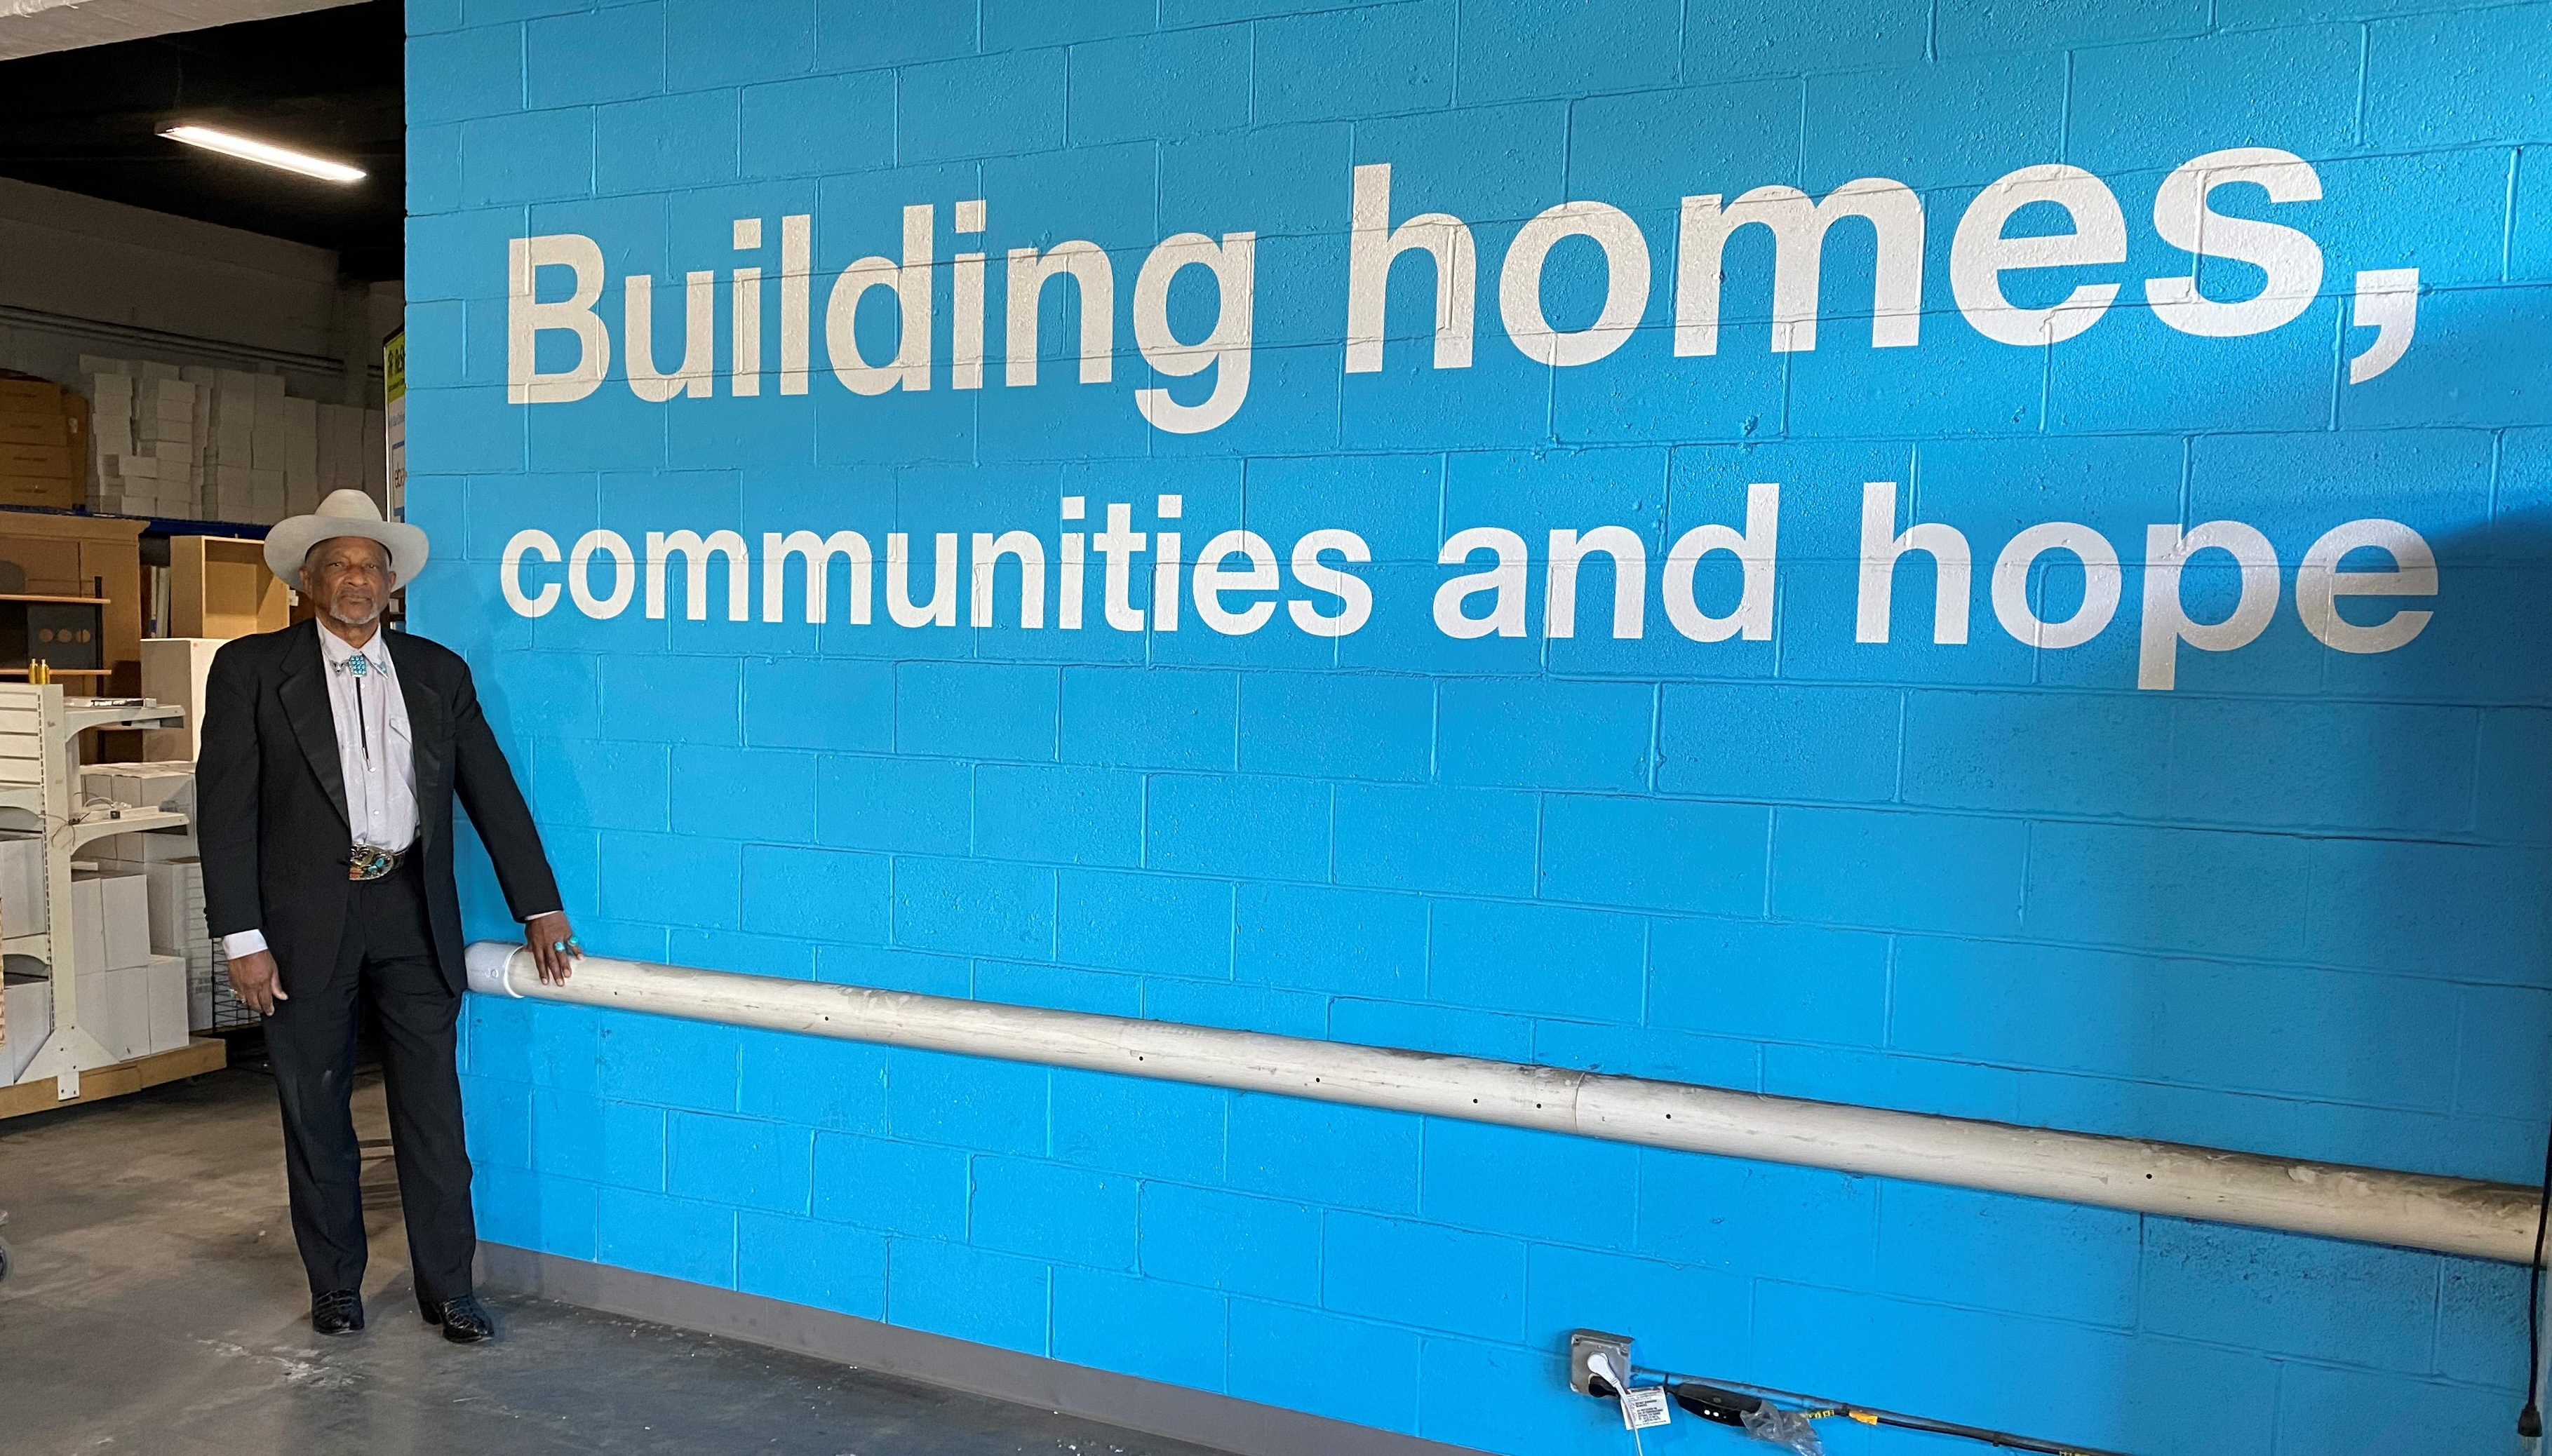 """Al Lynch smiling in front of a wall that says """"Building homes, communities and hope""""."""